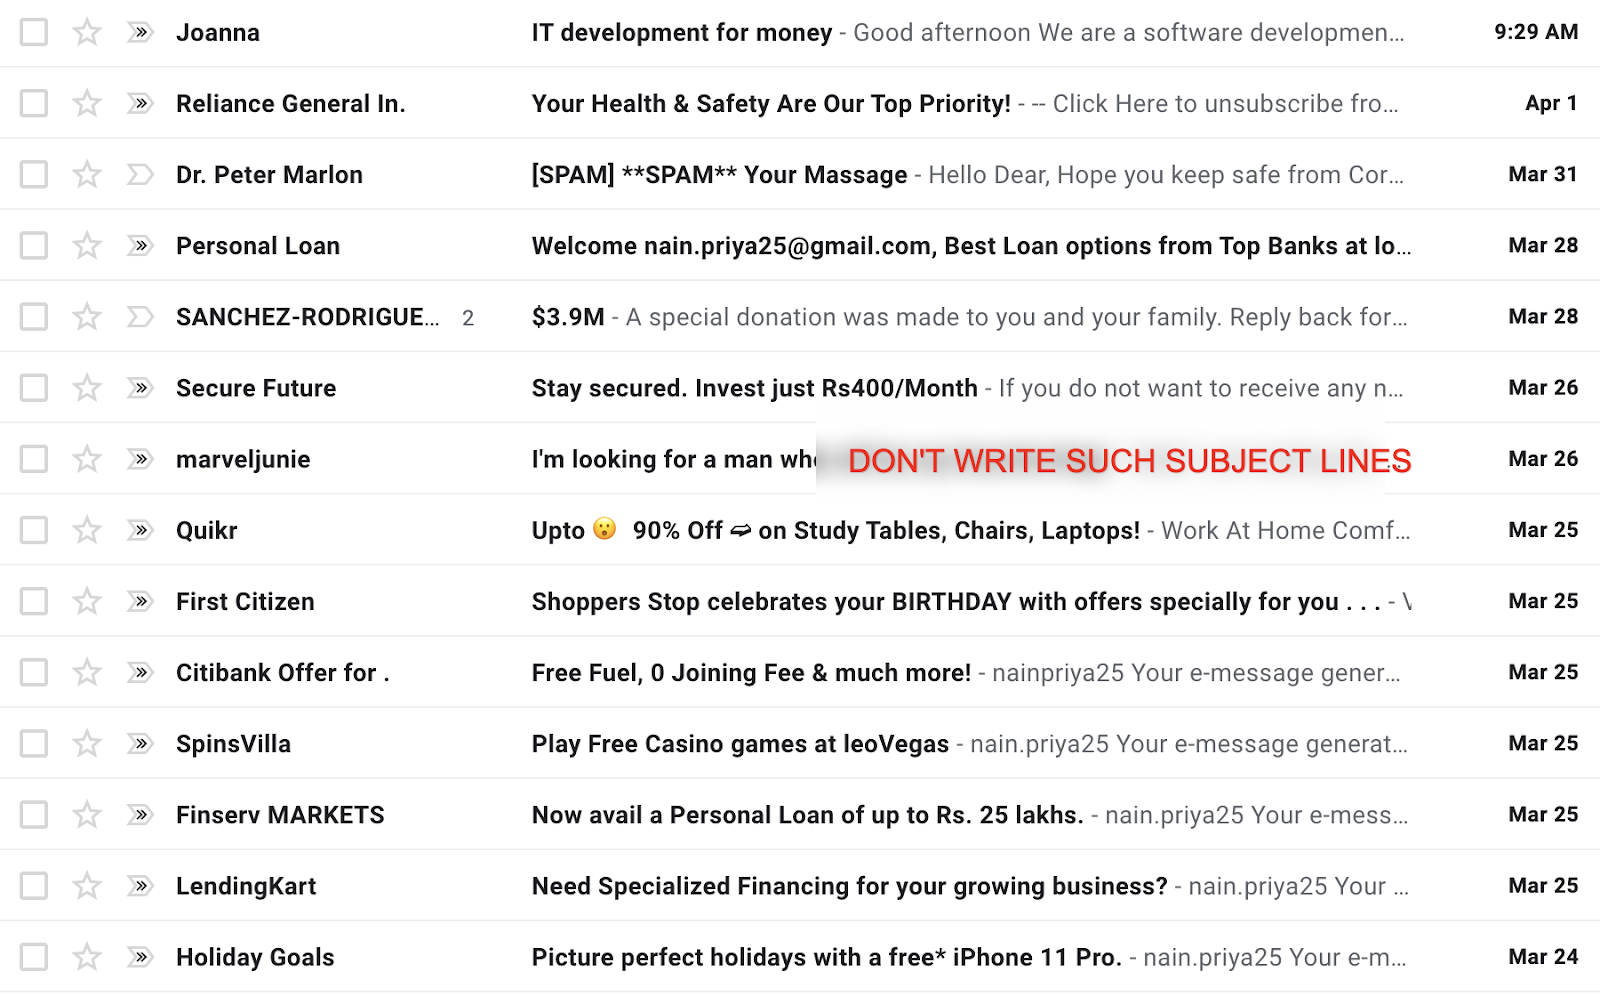 Avoid spammy subject lines